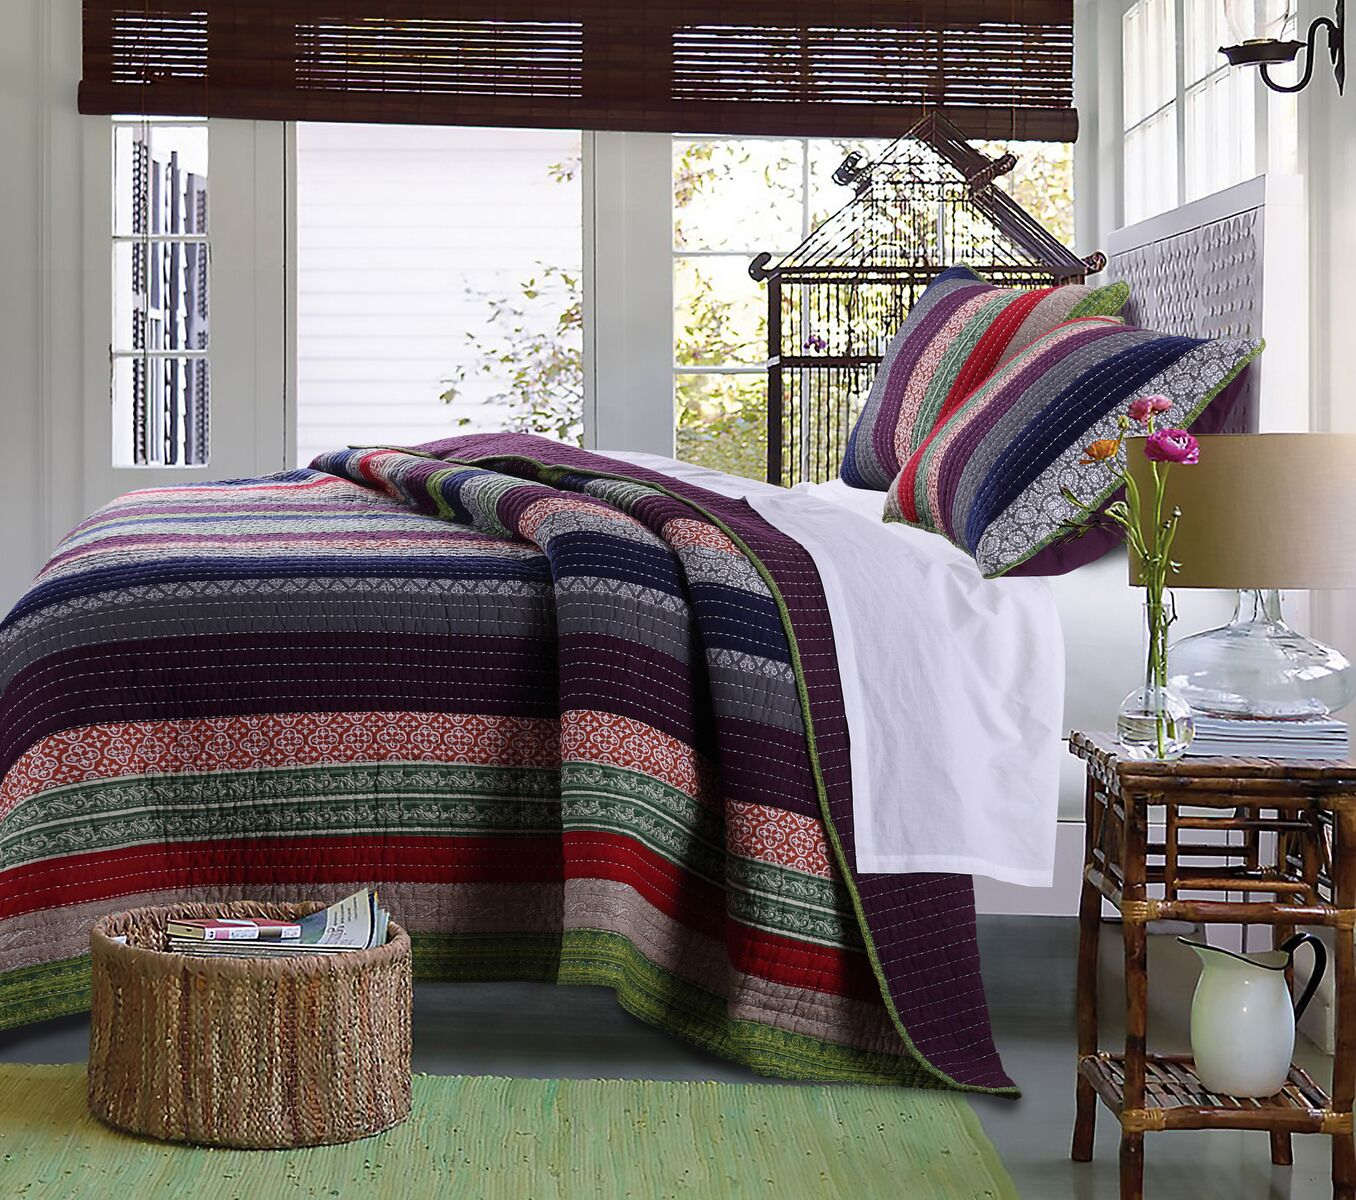 Marley Multi Quilt Set, 3-piece King